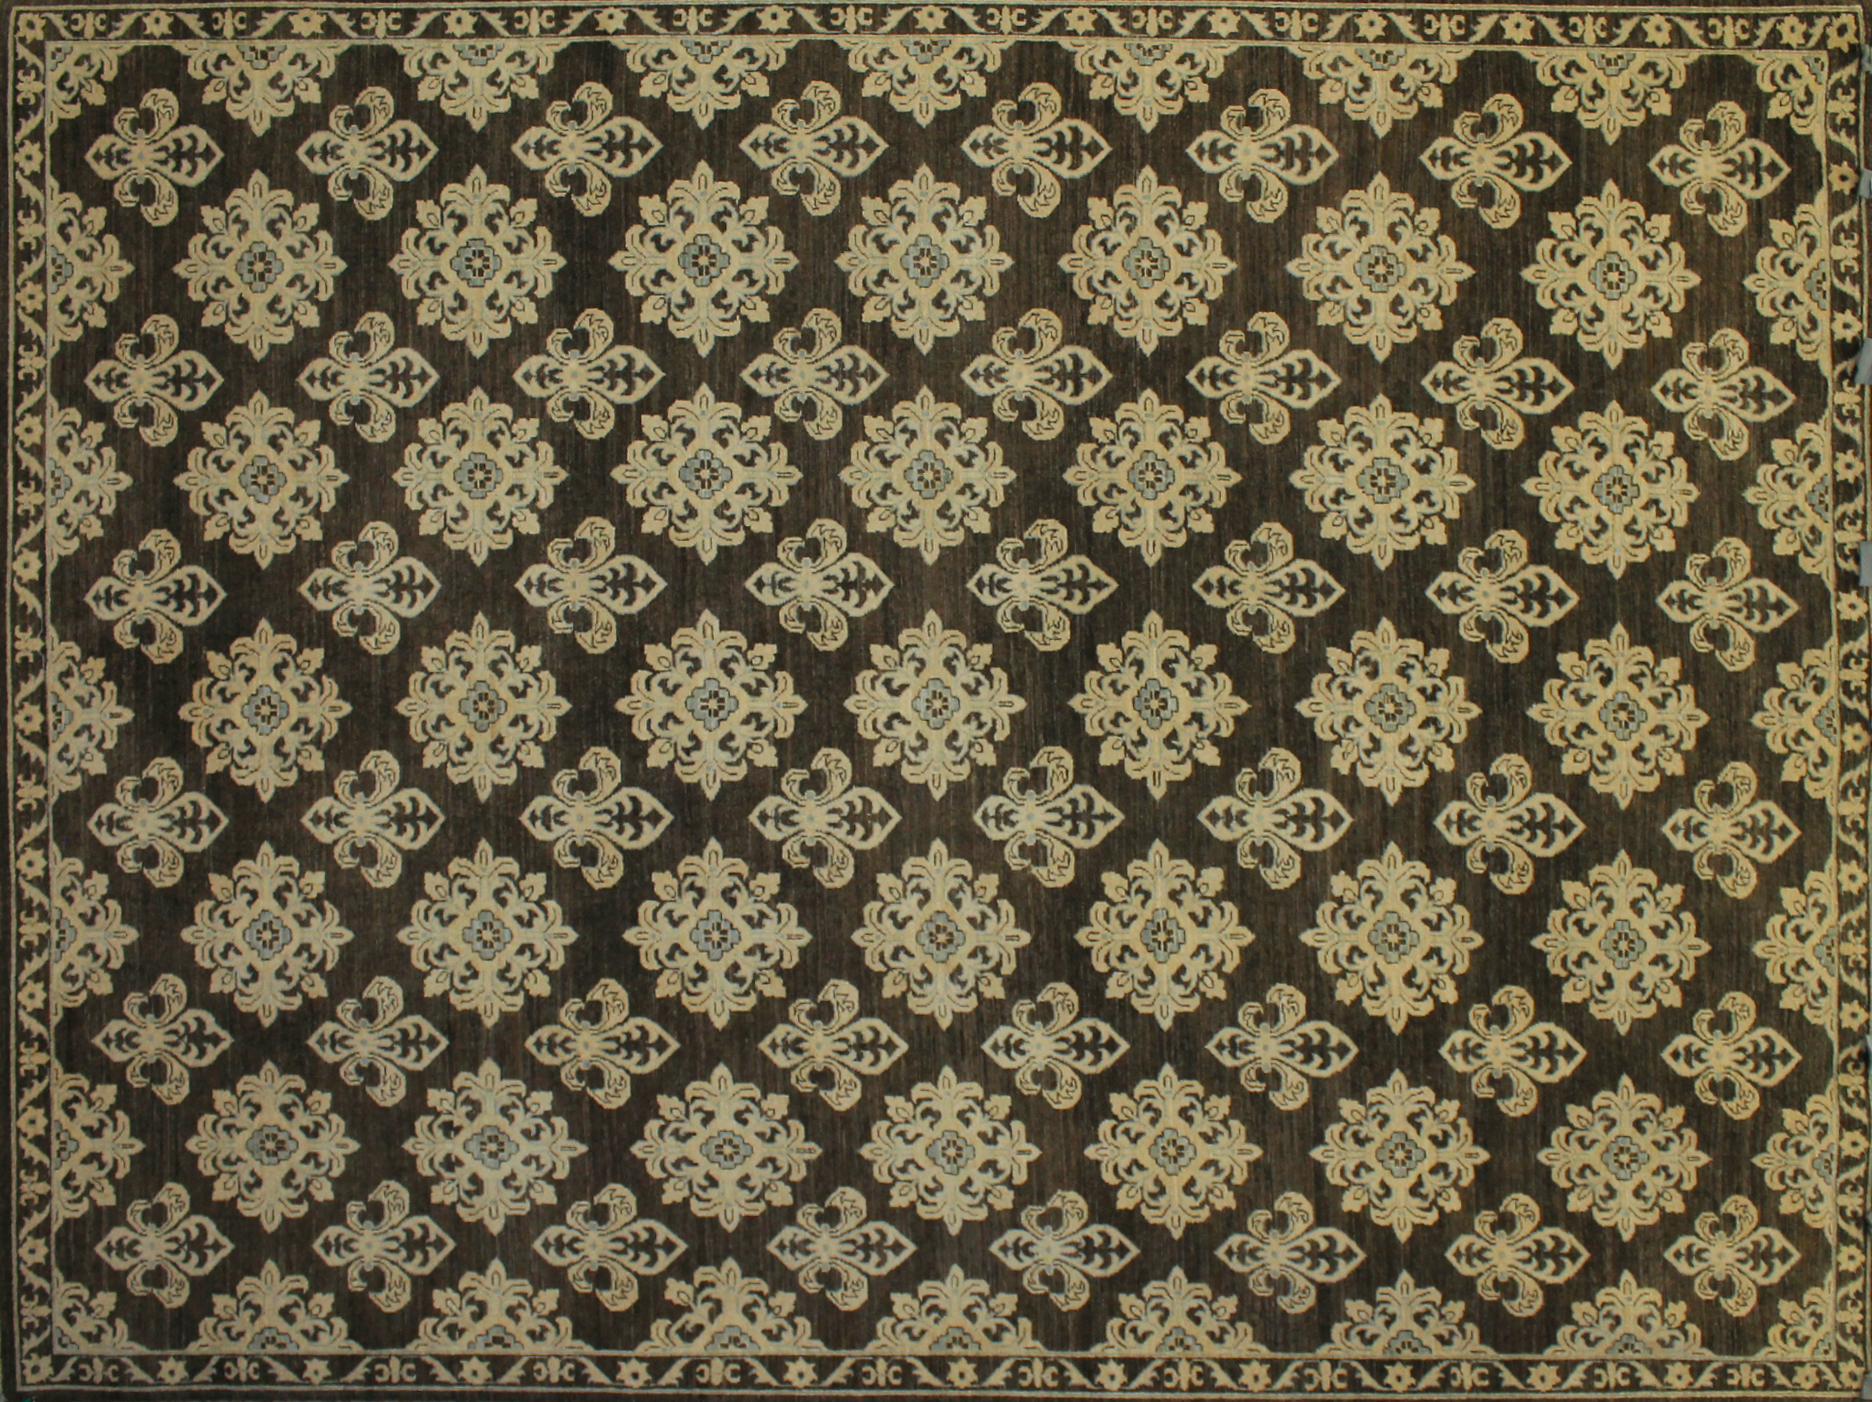 9x12 Peshawar Hand Knotted Wool Area Rug - MR9960